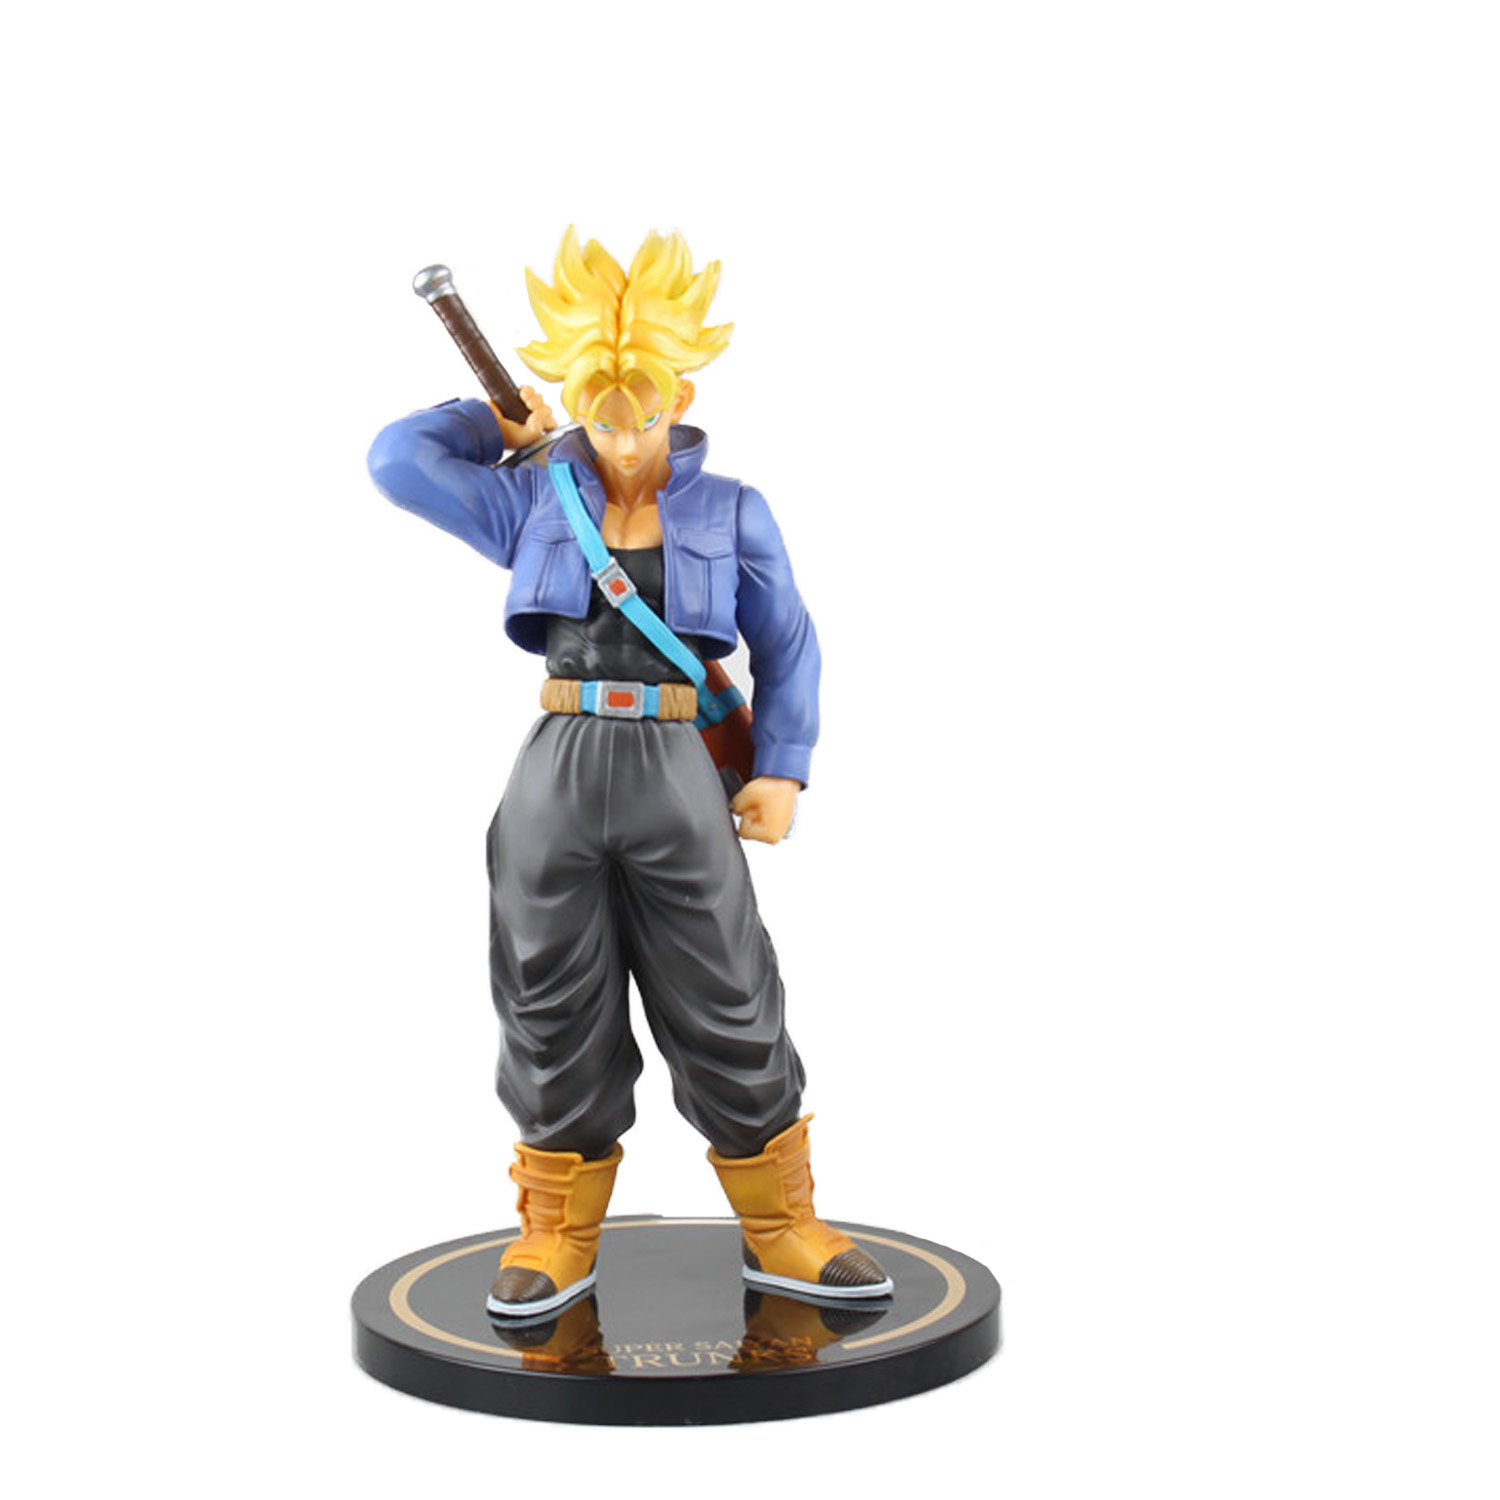 Chanycore Anime Dragon Ball Z 24CM Super saiyan TRUNKS MH Figuarts Zero EX VEGETA Action Figures PVC Limit ForCollectible Toy anime dragon ball super saiyan 3 son gokou pvc action figure collectible model toy 18cm kt2841